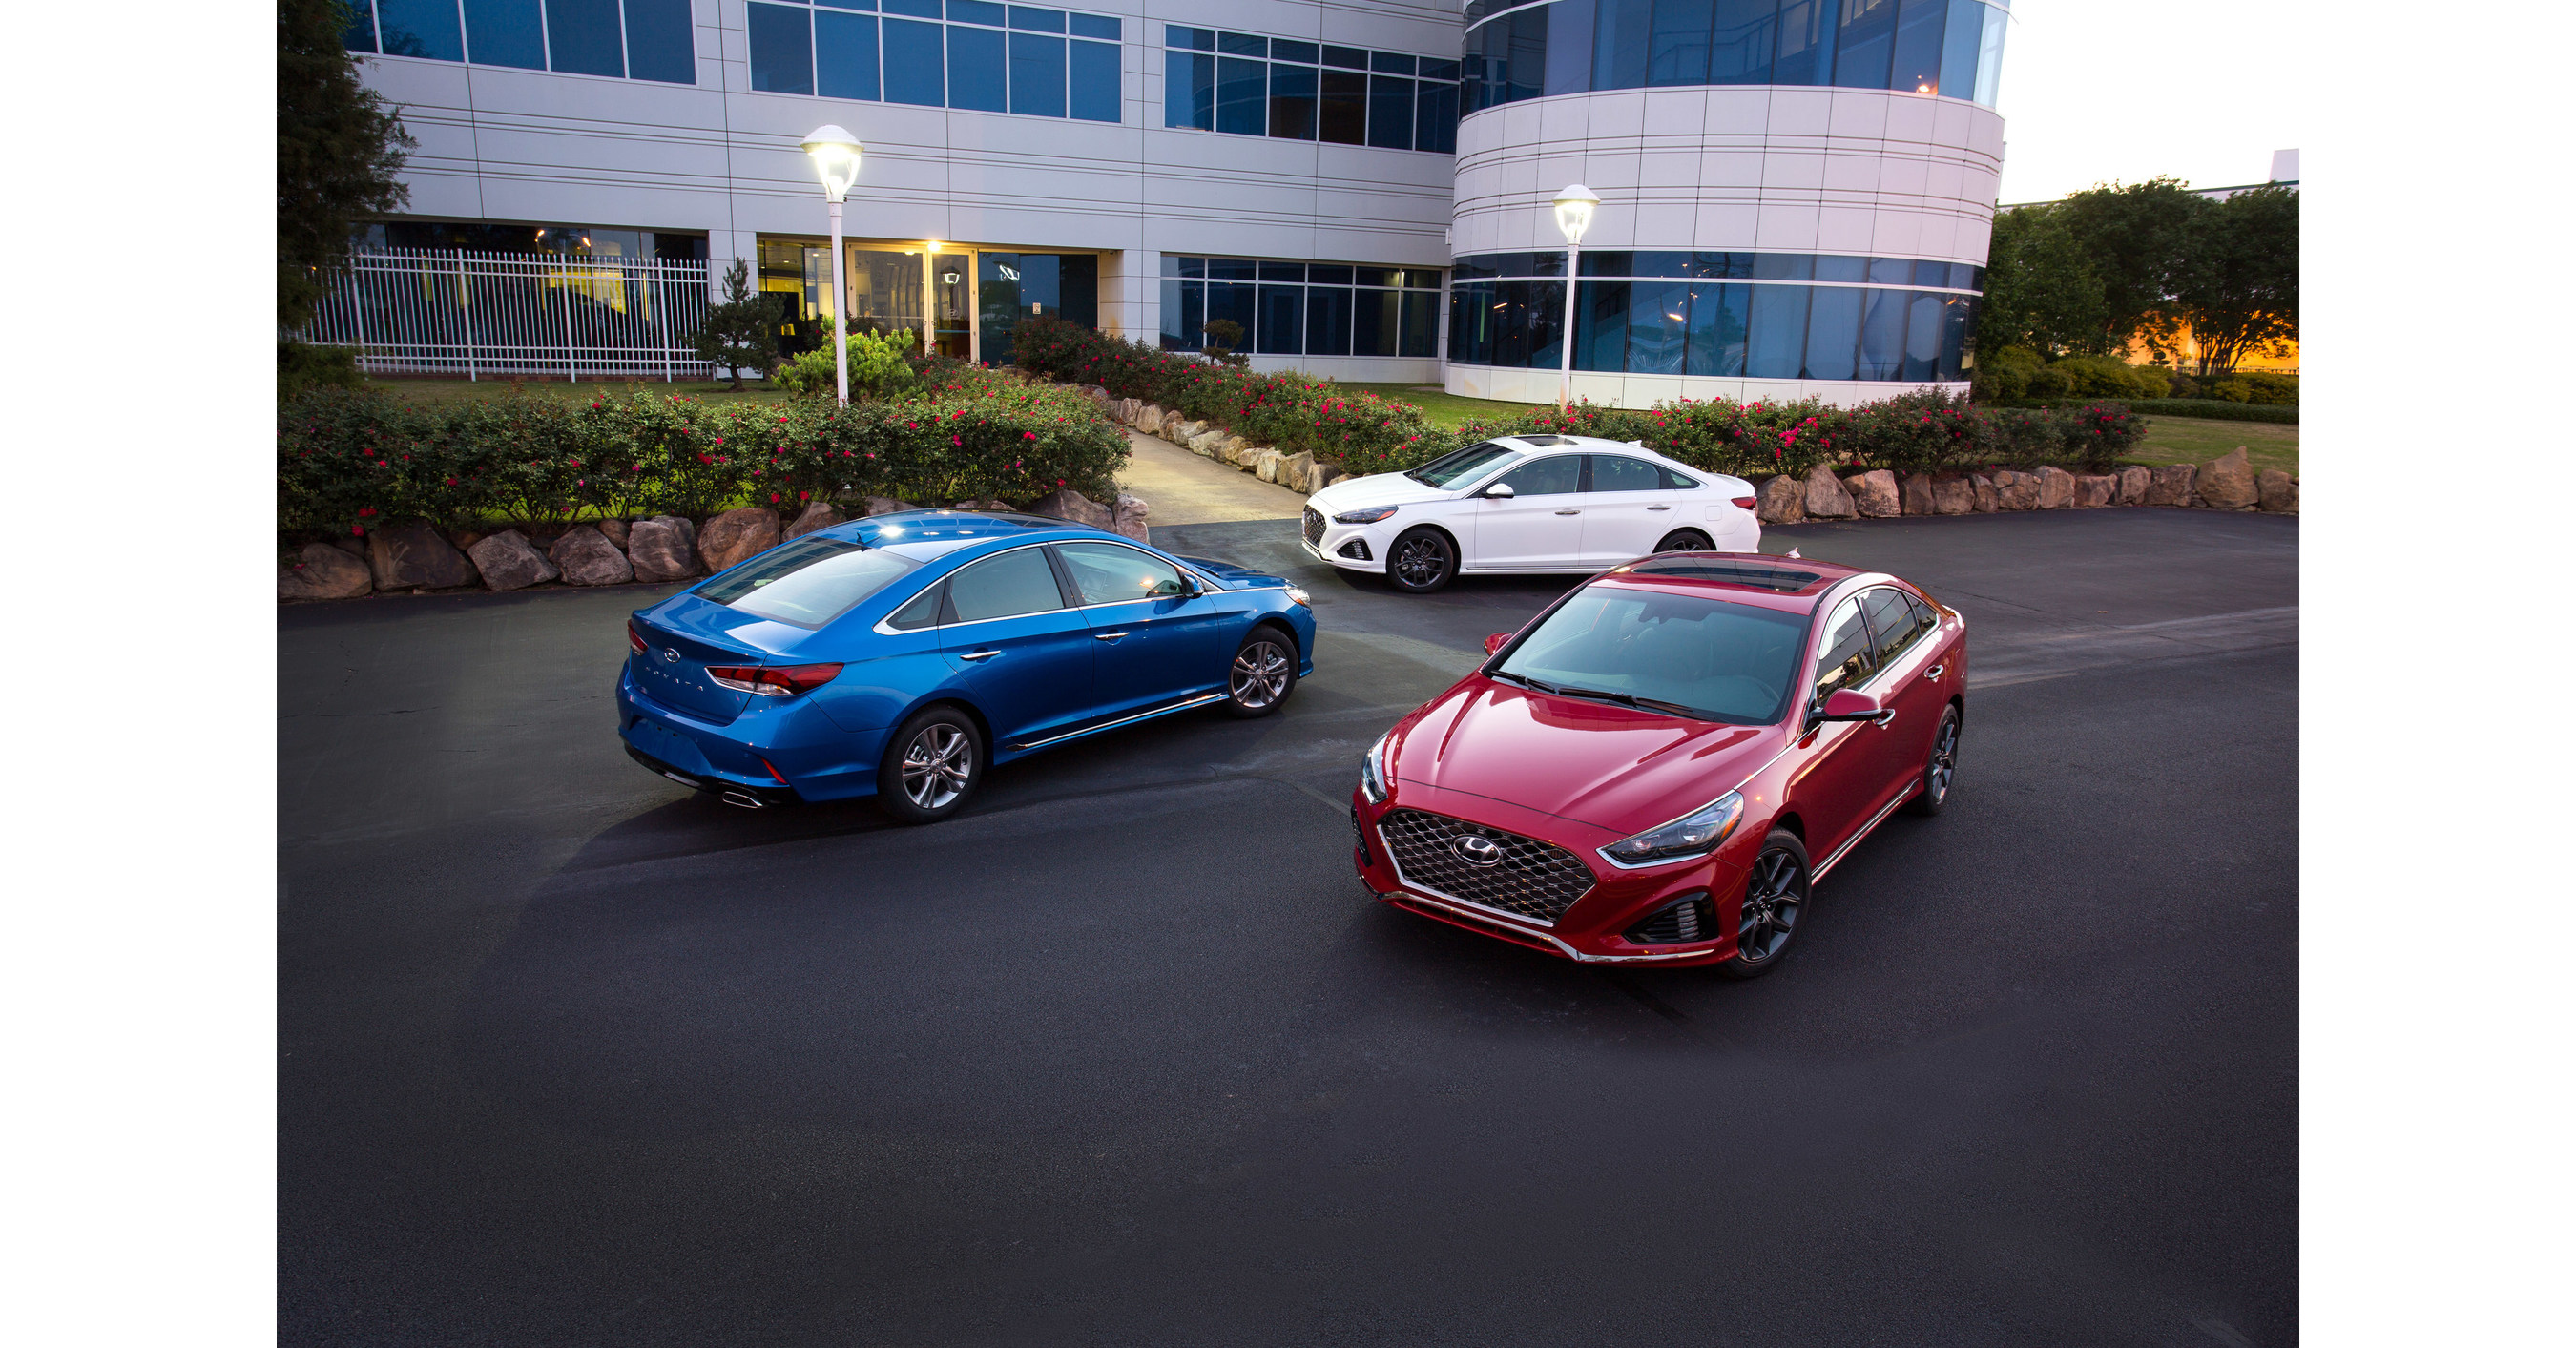 Hyundai motor company united states - Hyundai Motor America Enhances Military Incentive For Veterans Day Weekend